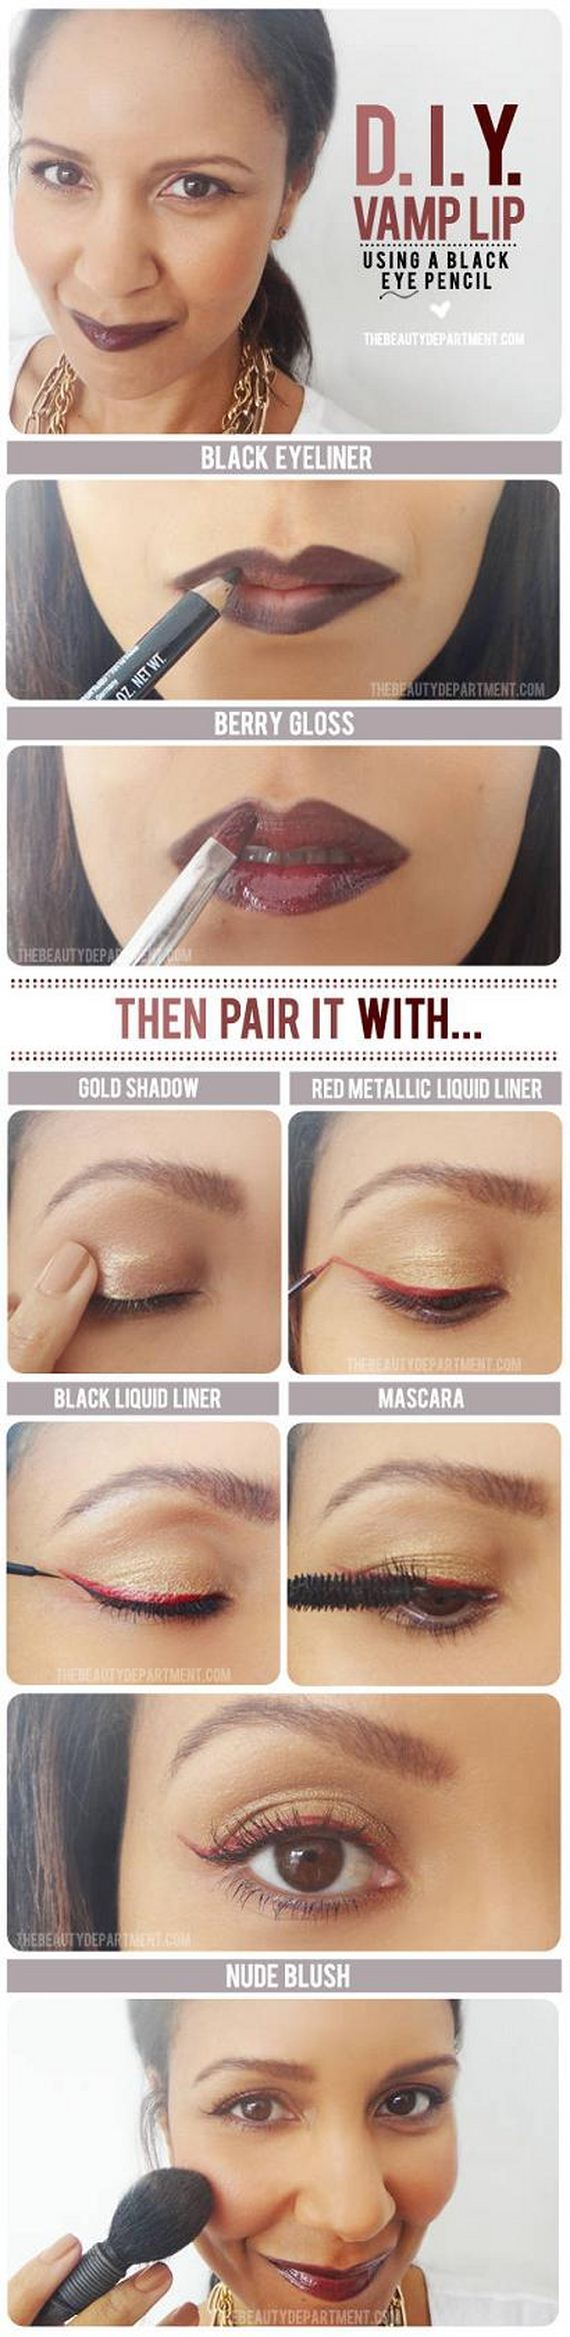 10-Ways-To-Make-Your-Lips-Look-Perfect